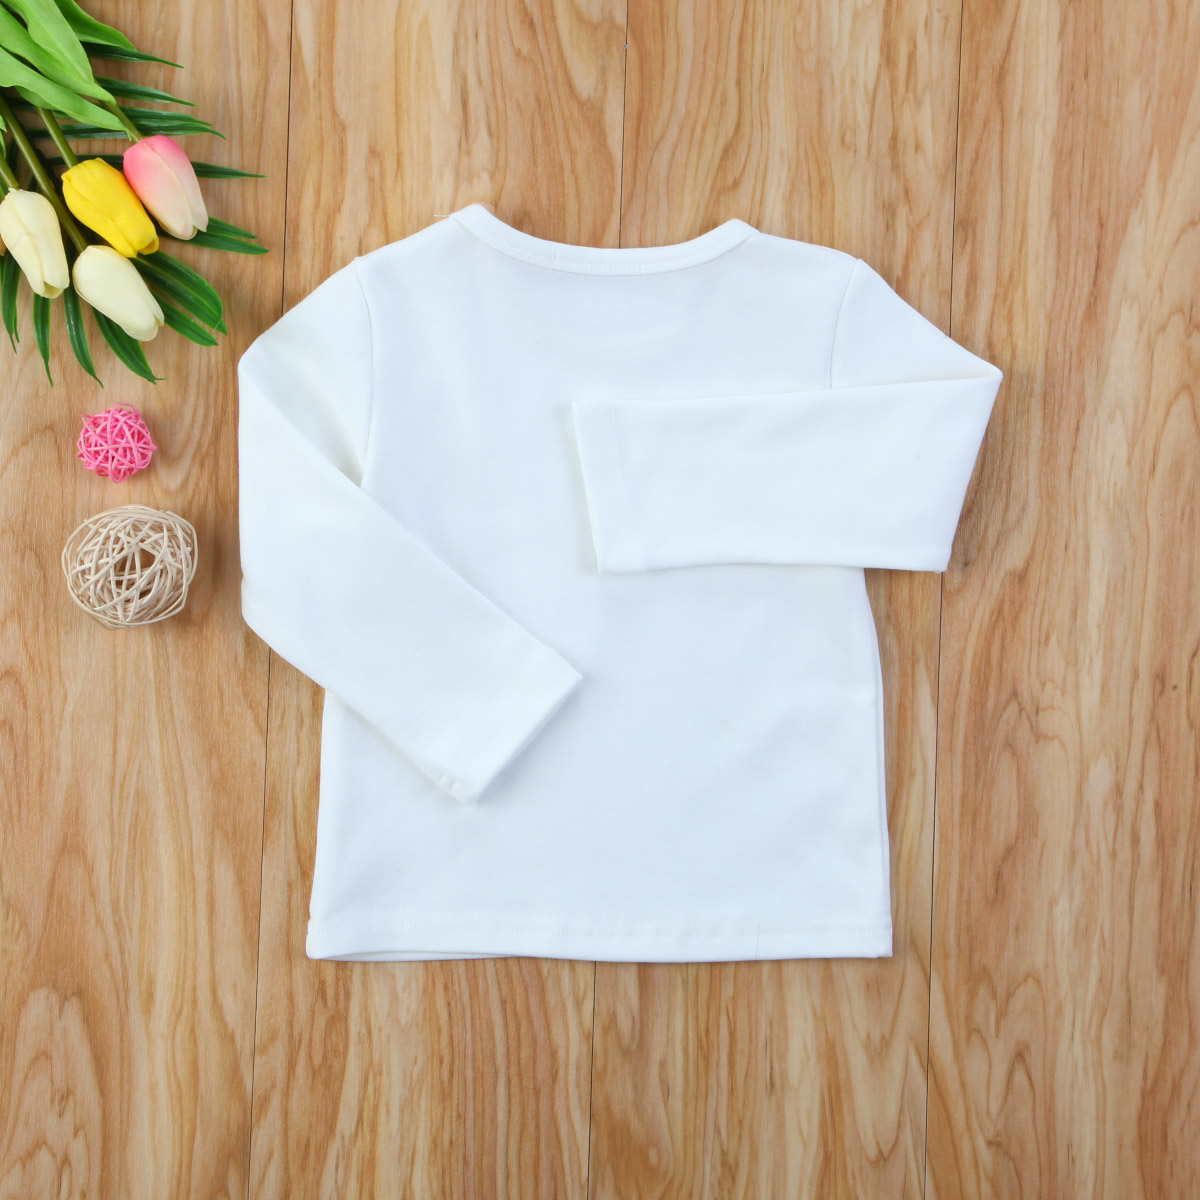 Autumn Cotton Newborn Infant Kids Baby Boys Girls Clothes Solid Cotton Soft Clothing Long Sleeves T-shirt Tops 14